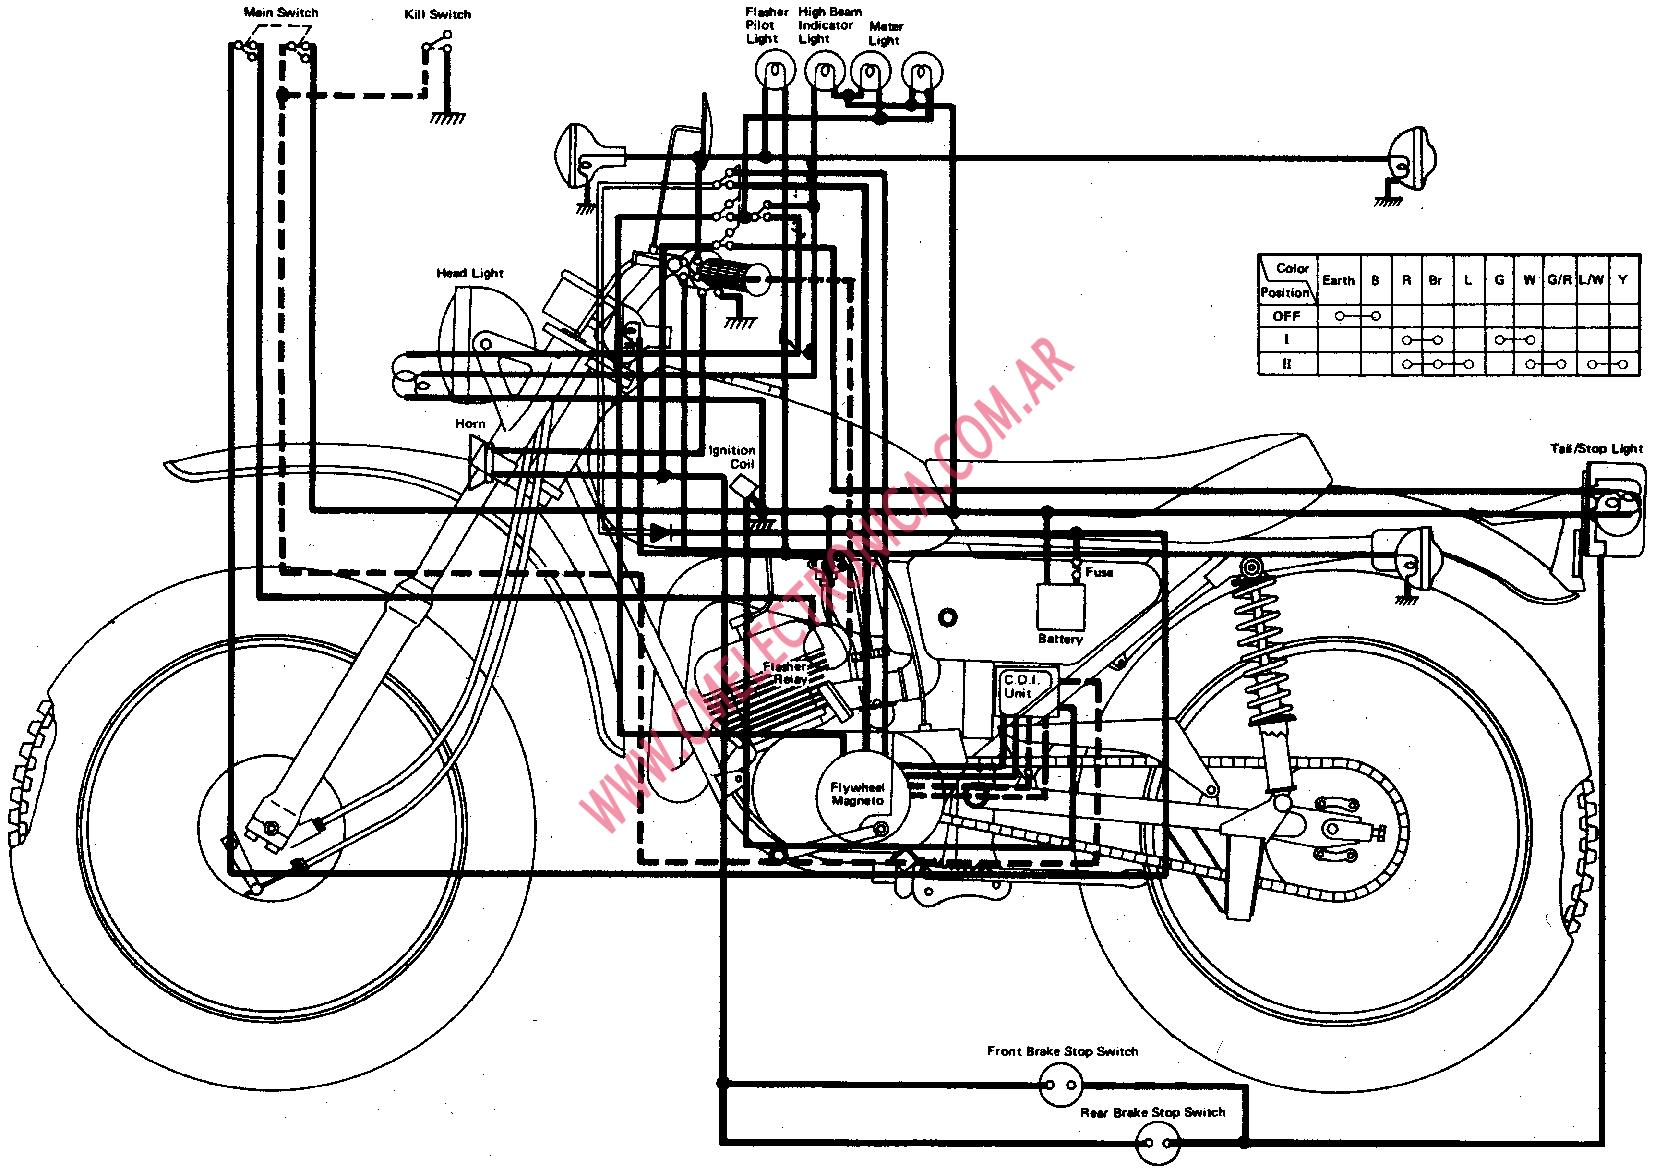 Ford Truck Vin Identification Code additionally Warn Winch Wiring Diagram Xd9000i likewise Electrical Wiring Diagram Of 1976 Honda Cb125s further Wiring additionally F  19. on kawasaki wiring diagram